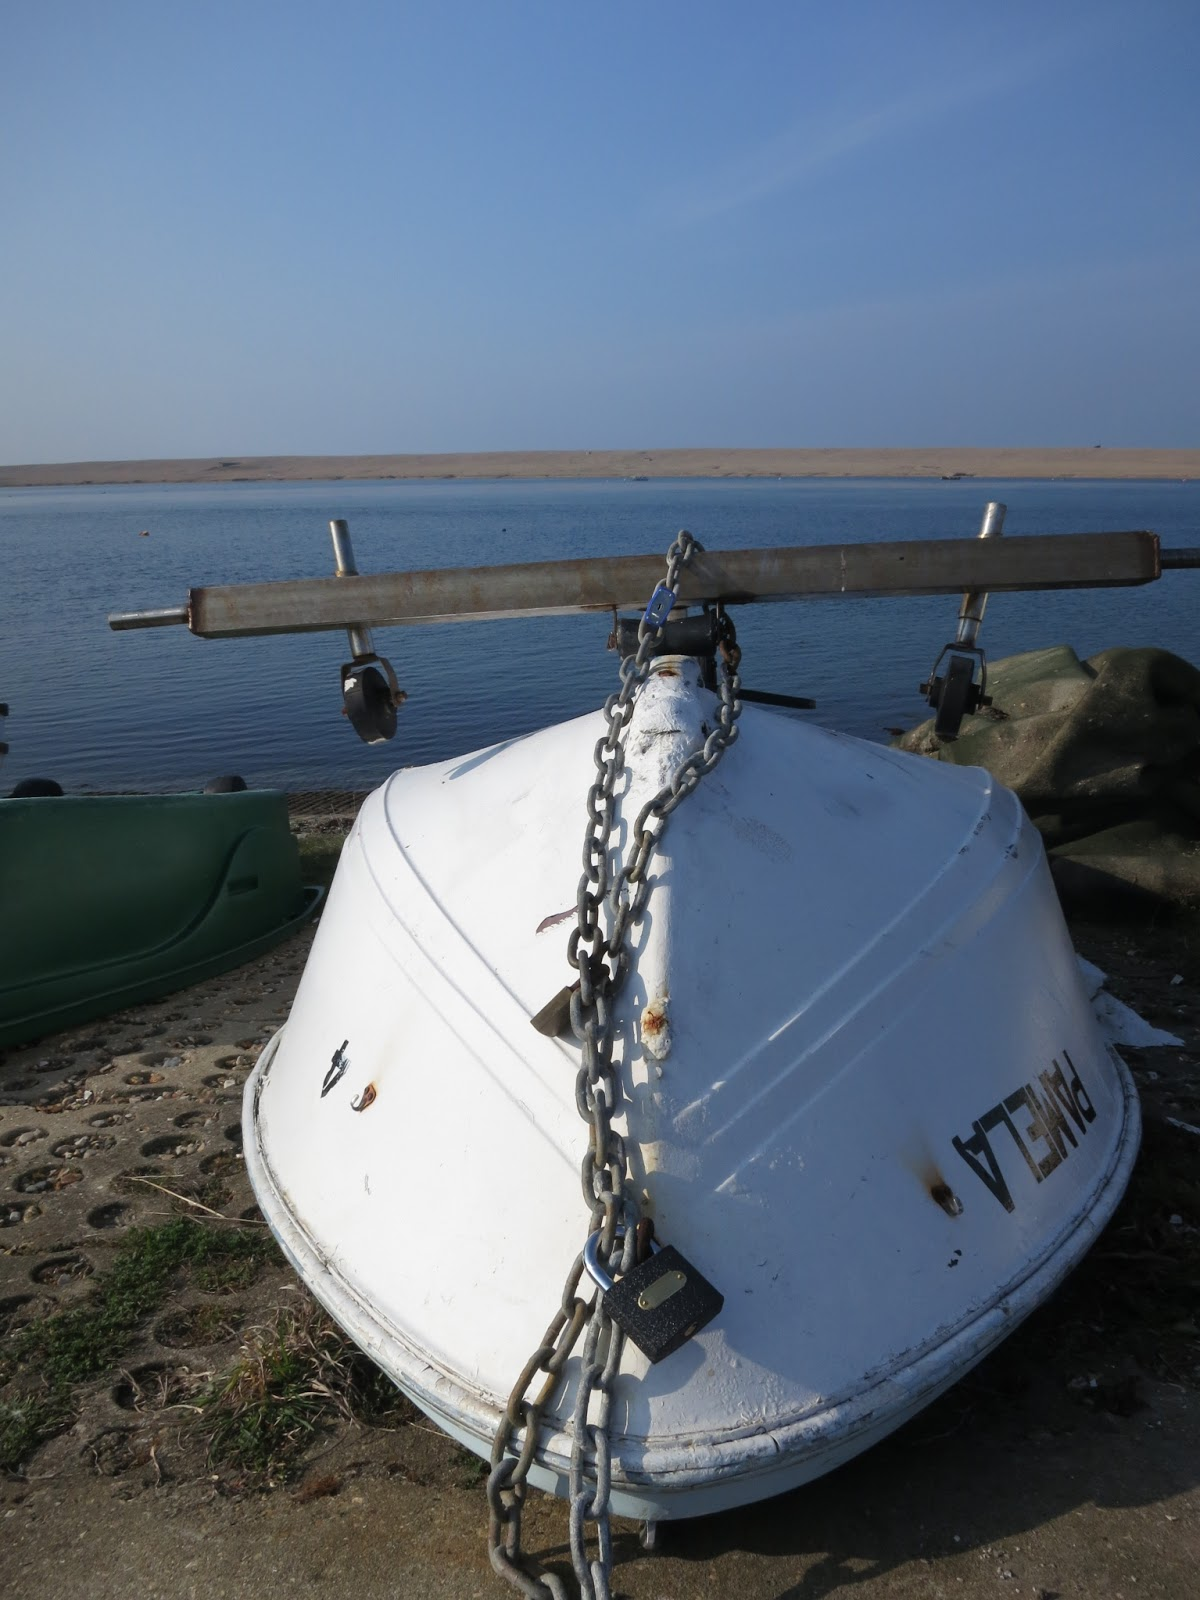 Upturned boat with chain over it and Chesil Beach in the background